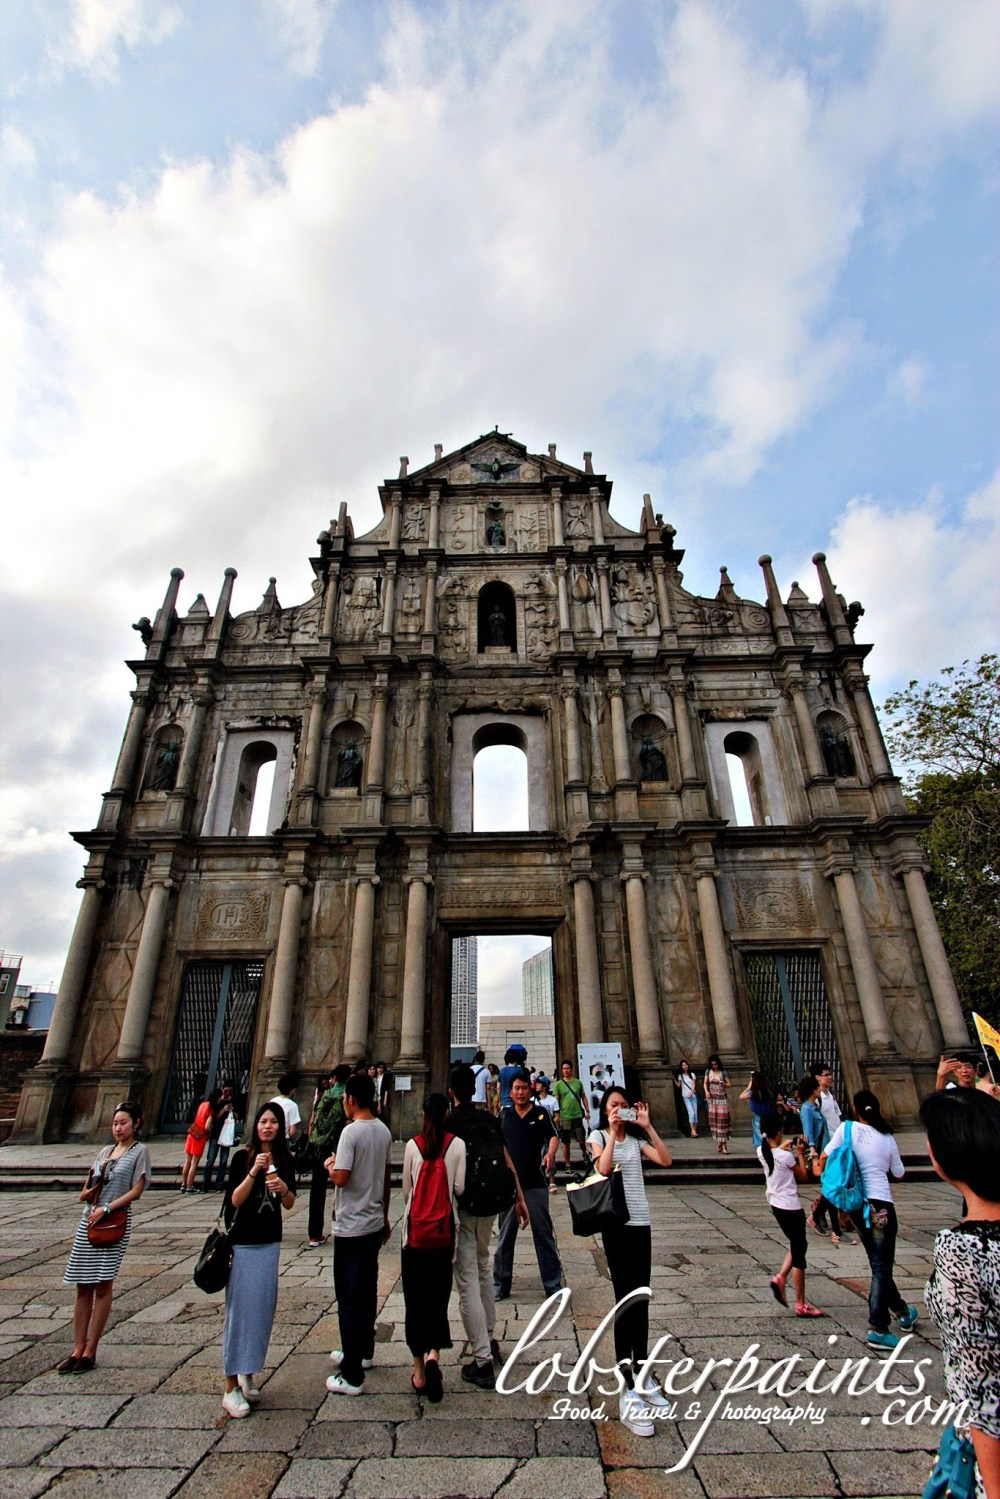 Ruins of St. Paul's 大三巴牌坊 | Macau, China